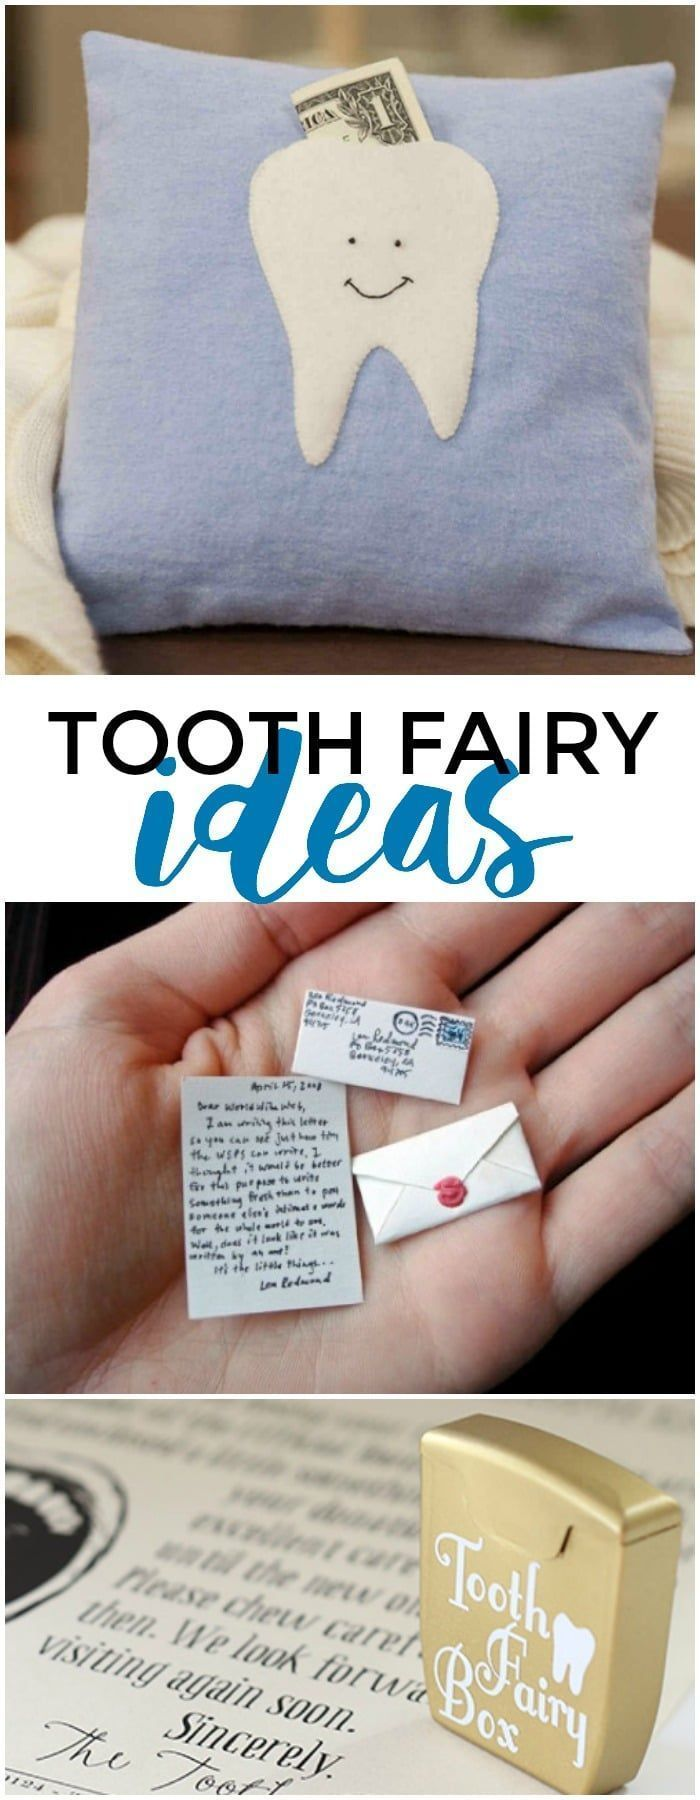 Creative Tooth Fairy Ideas + Excuses Why She Forgot! #toothfairyideas 15 creative tooth fairy ideas + 5 clever excuses why the Tooth Fairy forgot to come! #toothfairyideas Creative Tooth Fairy Ideas + Excuses Why She Forgot! #toothfairyideas 15 creative tooth fairy ideas + 5 clever excuses why the Tooth Fairy forgot to come! #toothfairyideas Creative Tooth Fairy Ideas + Excuses Why She Forgot! #toothfairyideas 15 creative tooth fairy ideas + 5 clever excuses why the Tooth Fairy forgot to come! # #toothfairyideas